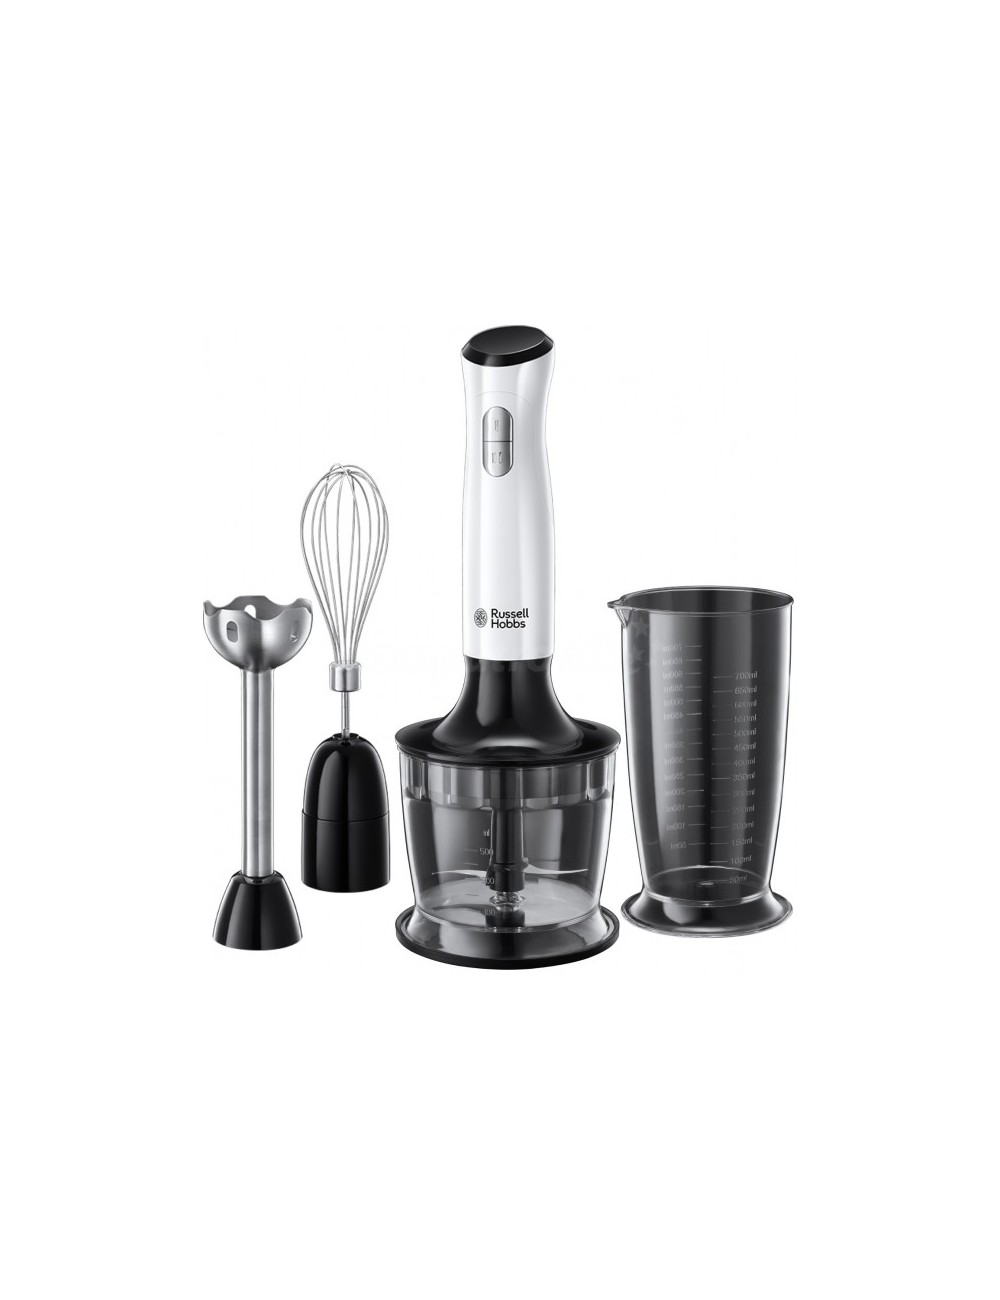 RUSSELL HOBBS Blender ręczny 3w1